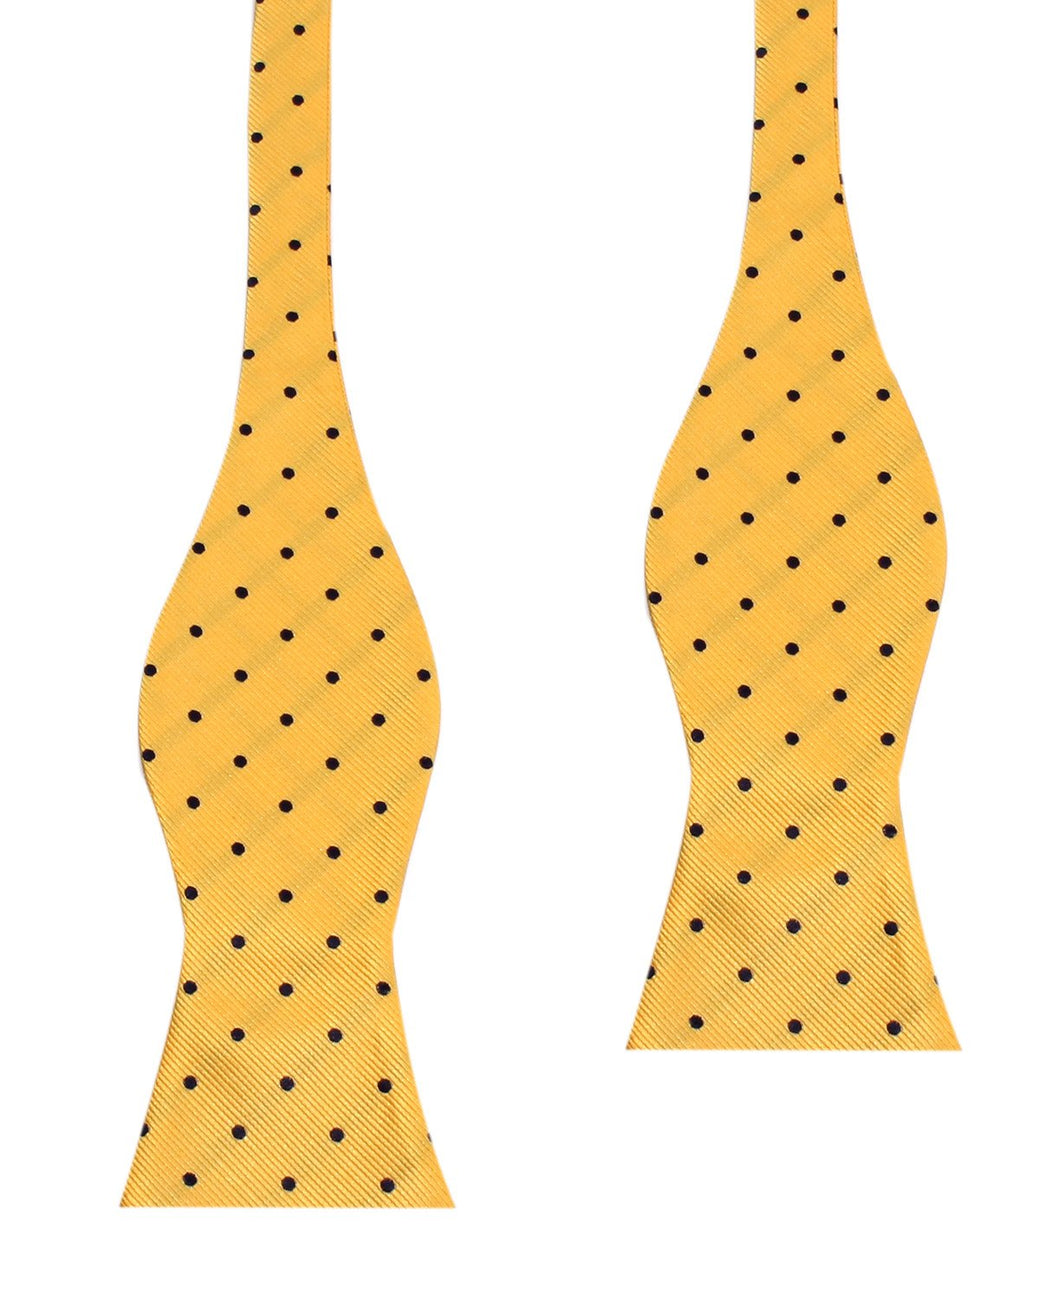 Yellow and blue polka dot bow tie (untied)